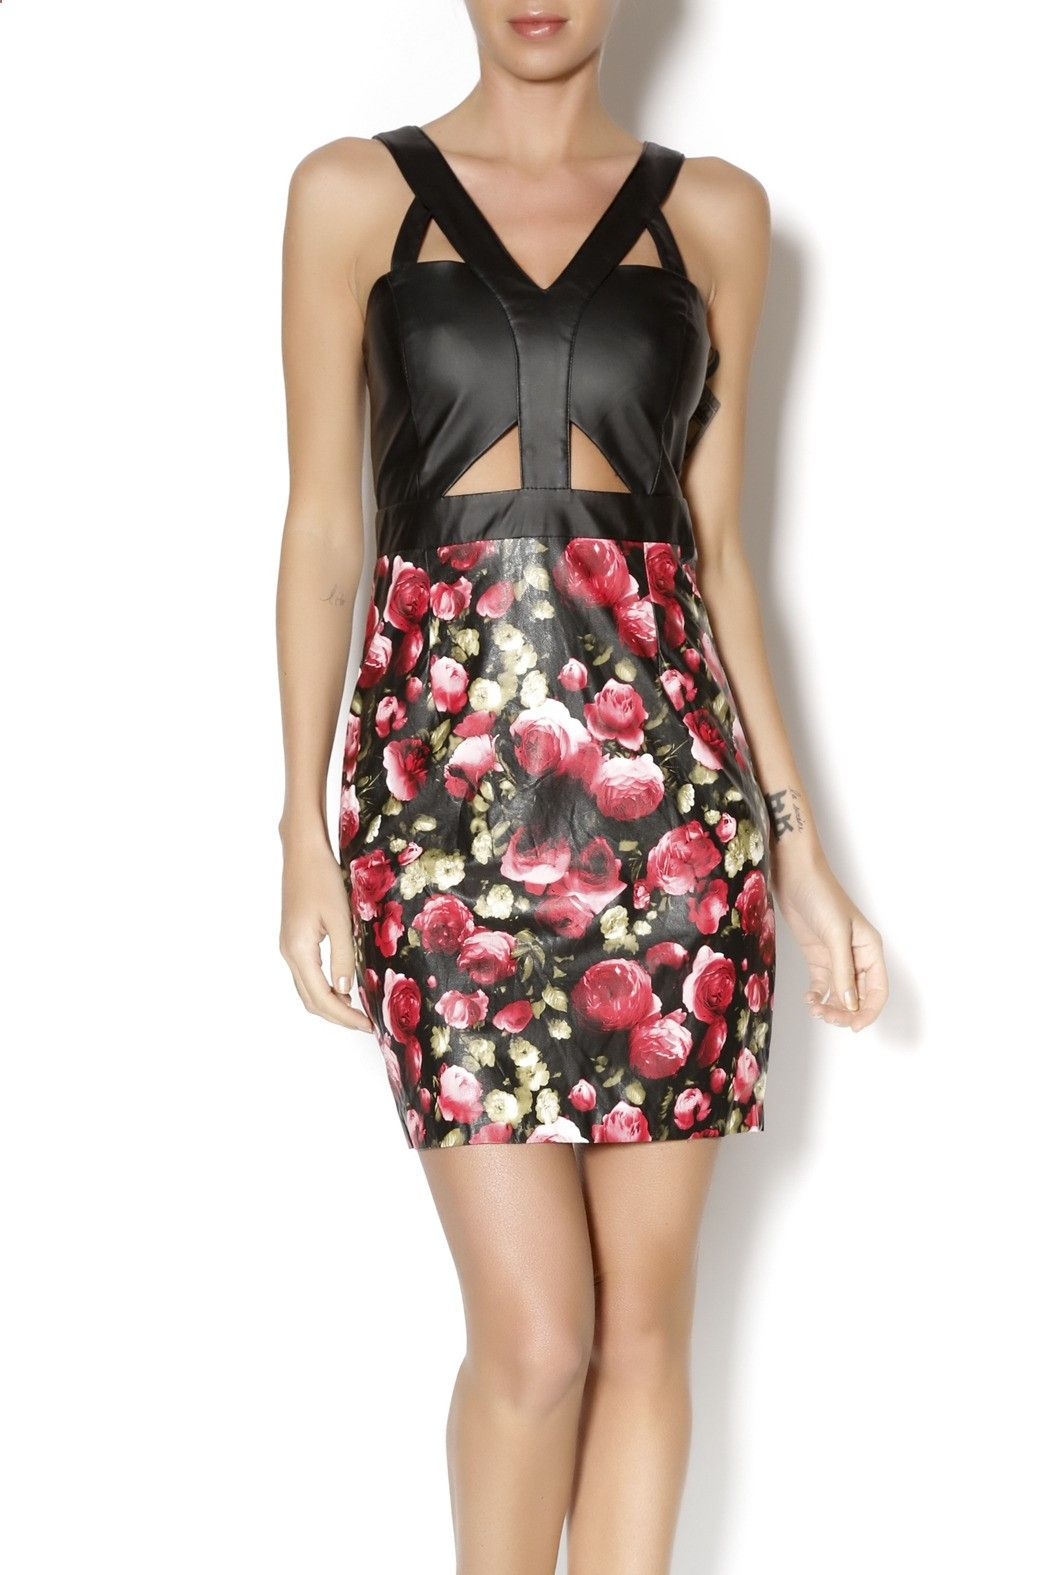 Clothes for romantic night romantical and edgy pleather dress with